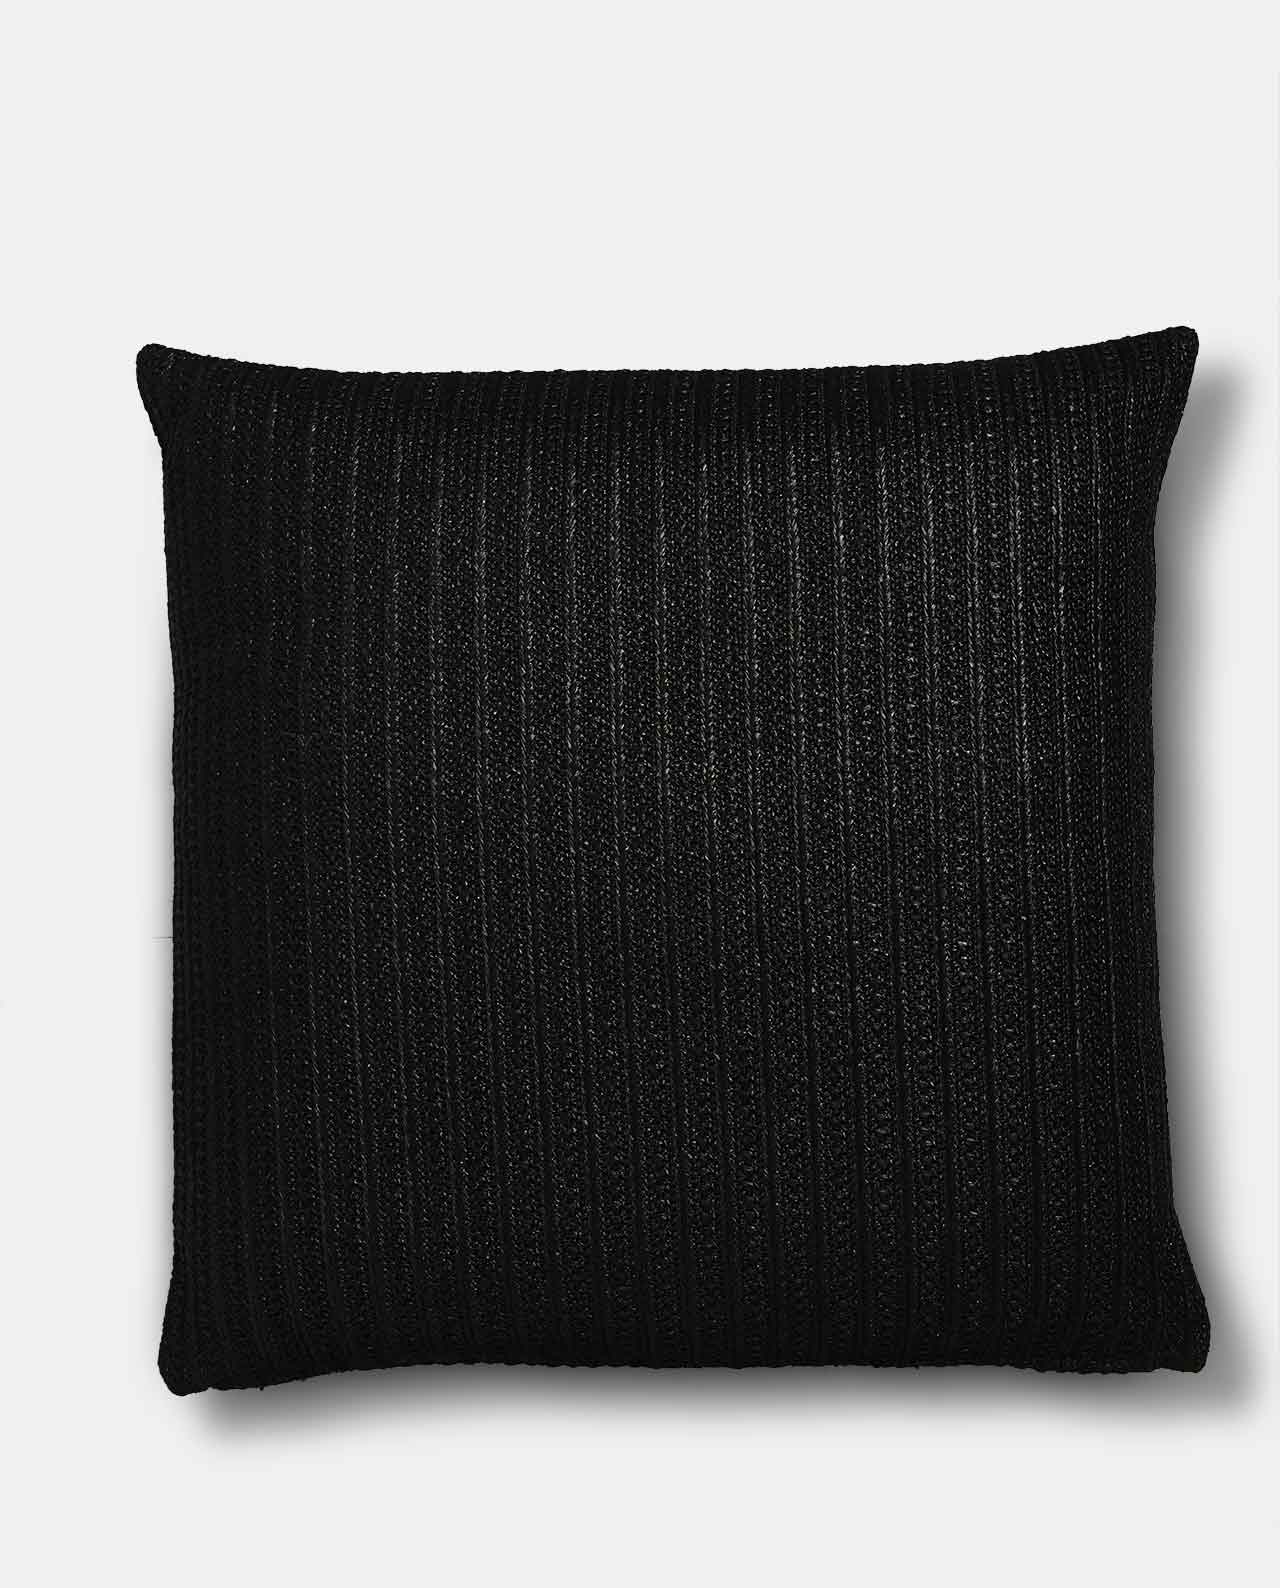 Black Jute Cushion Cover 60x60cm